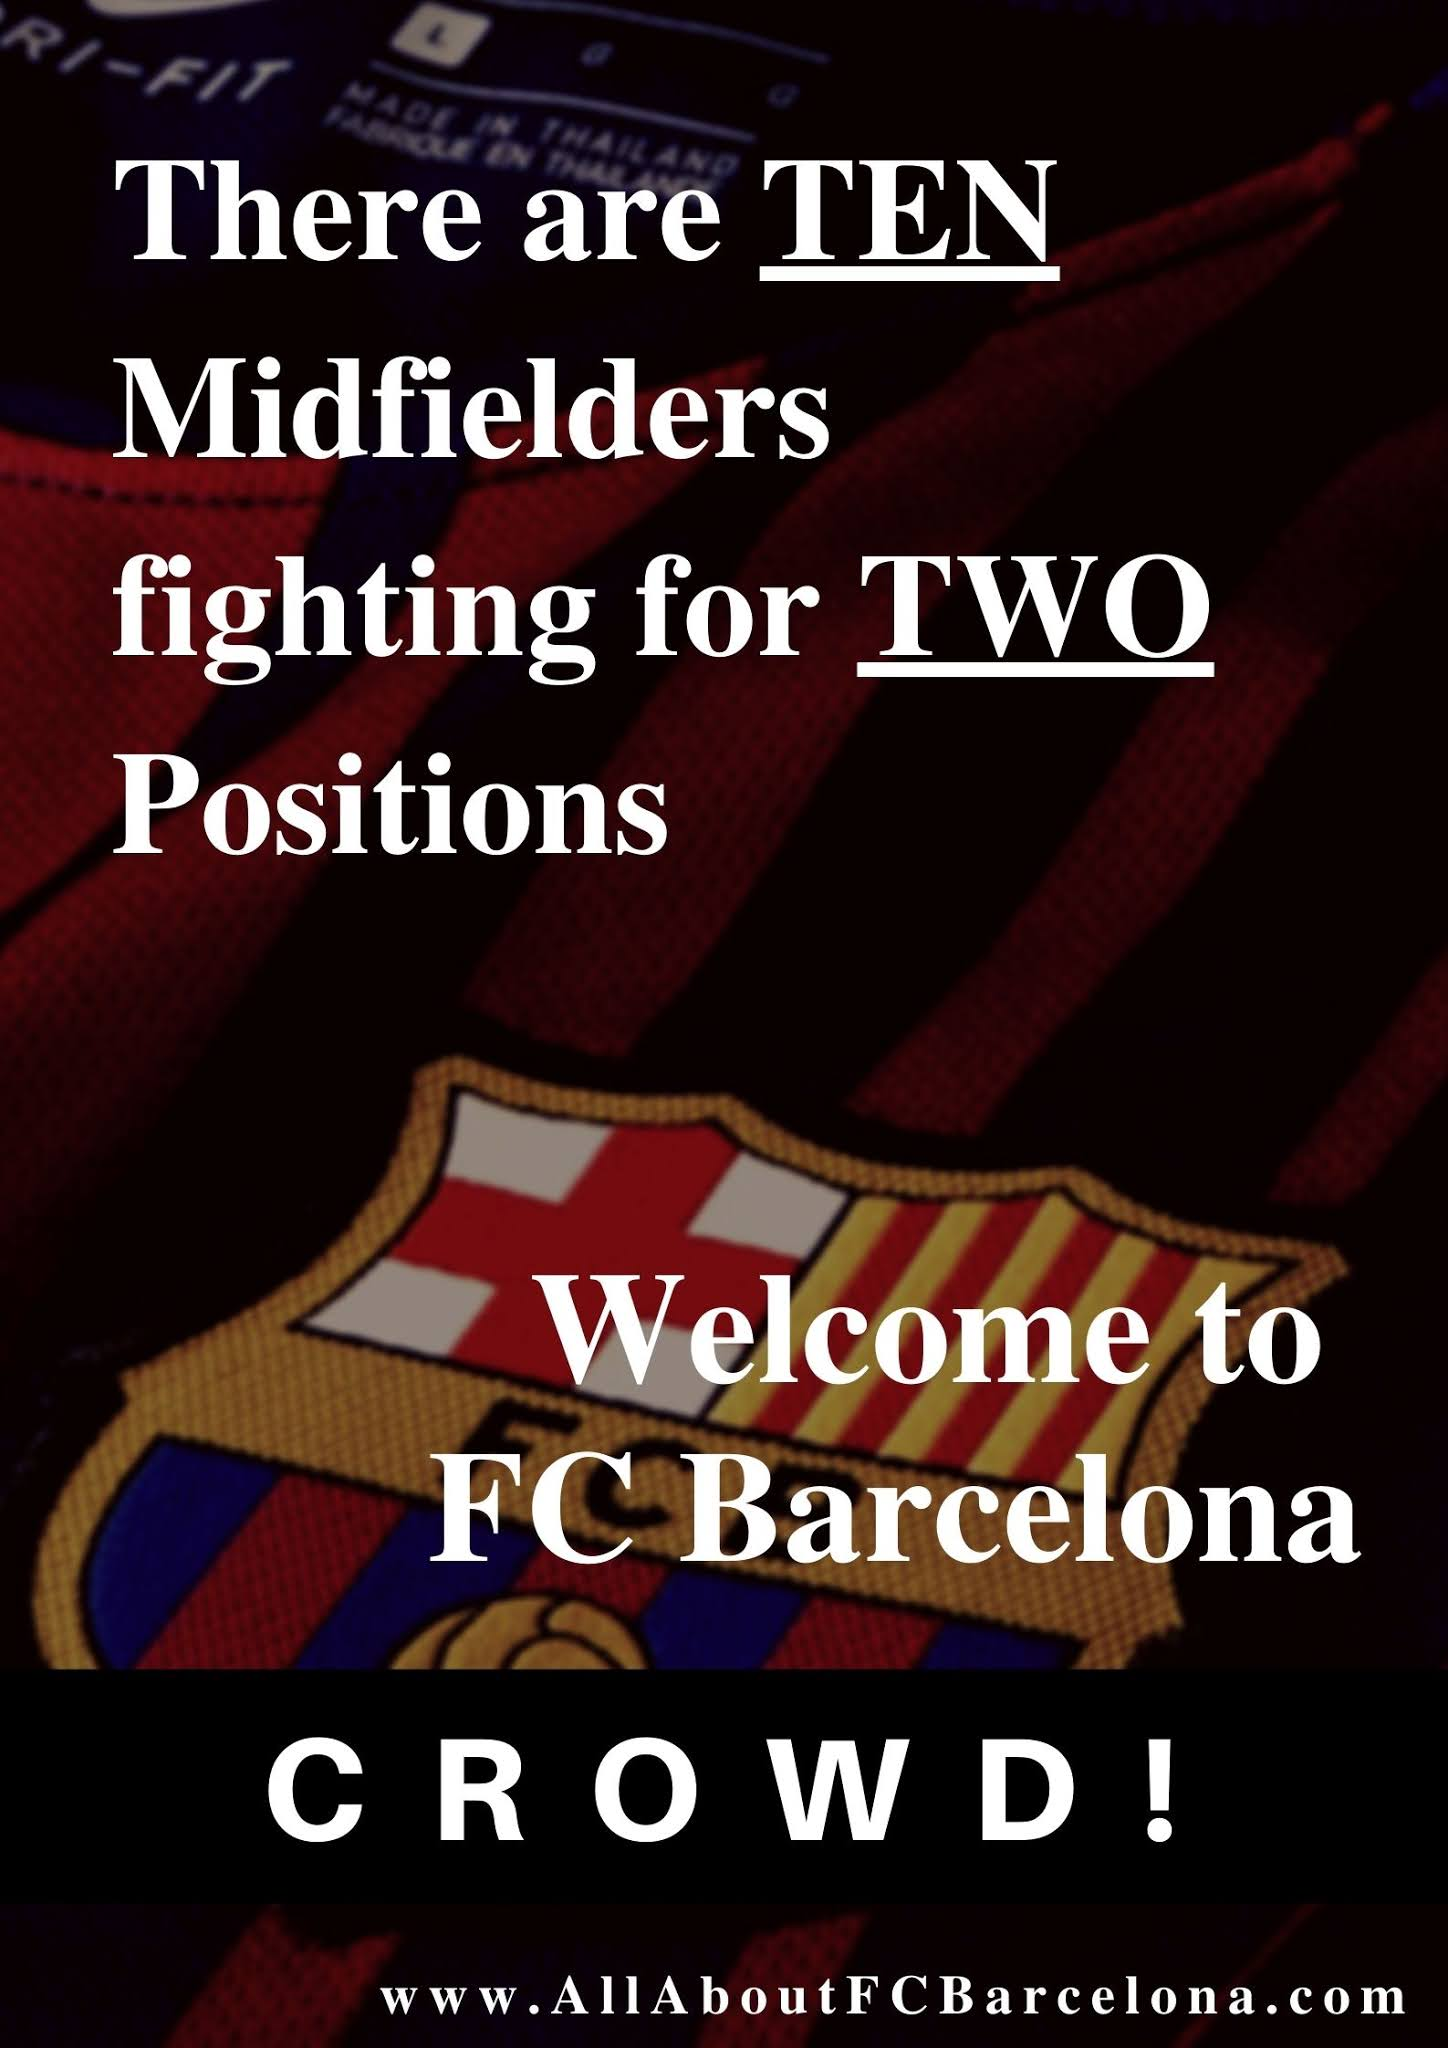 There are Ten Midfielders figting for Two Positions. Barcelona is a Crowded Place!